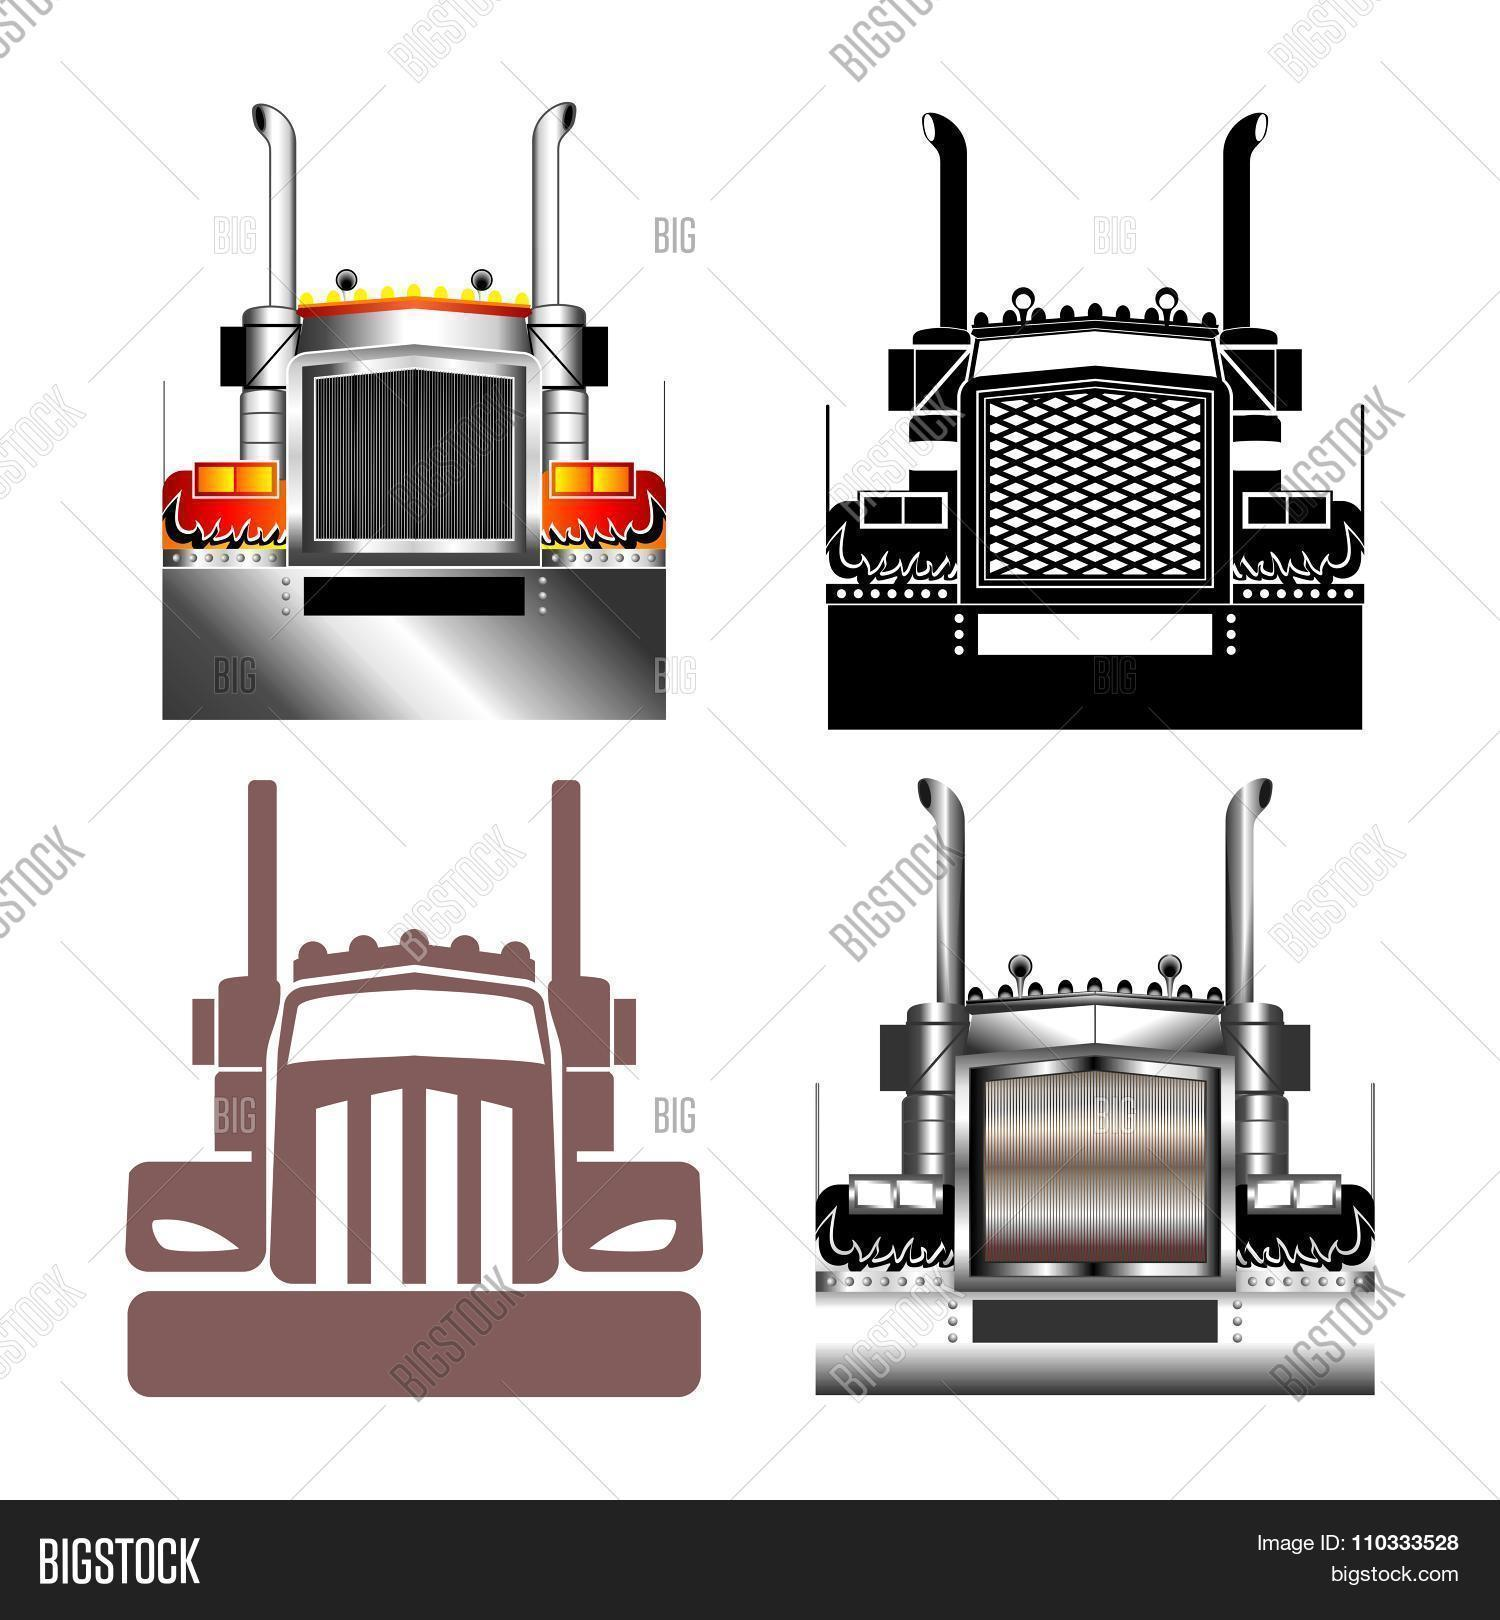 Vector Big Truck Grill Front illustration Stock Vector & Stock.